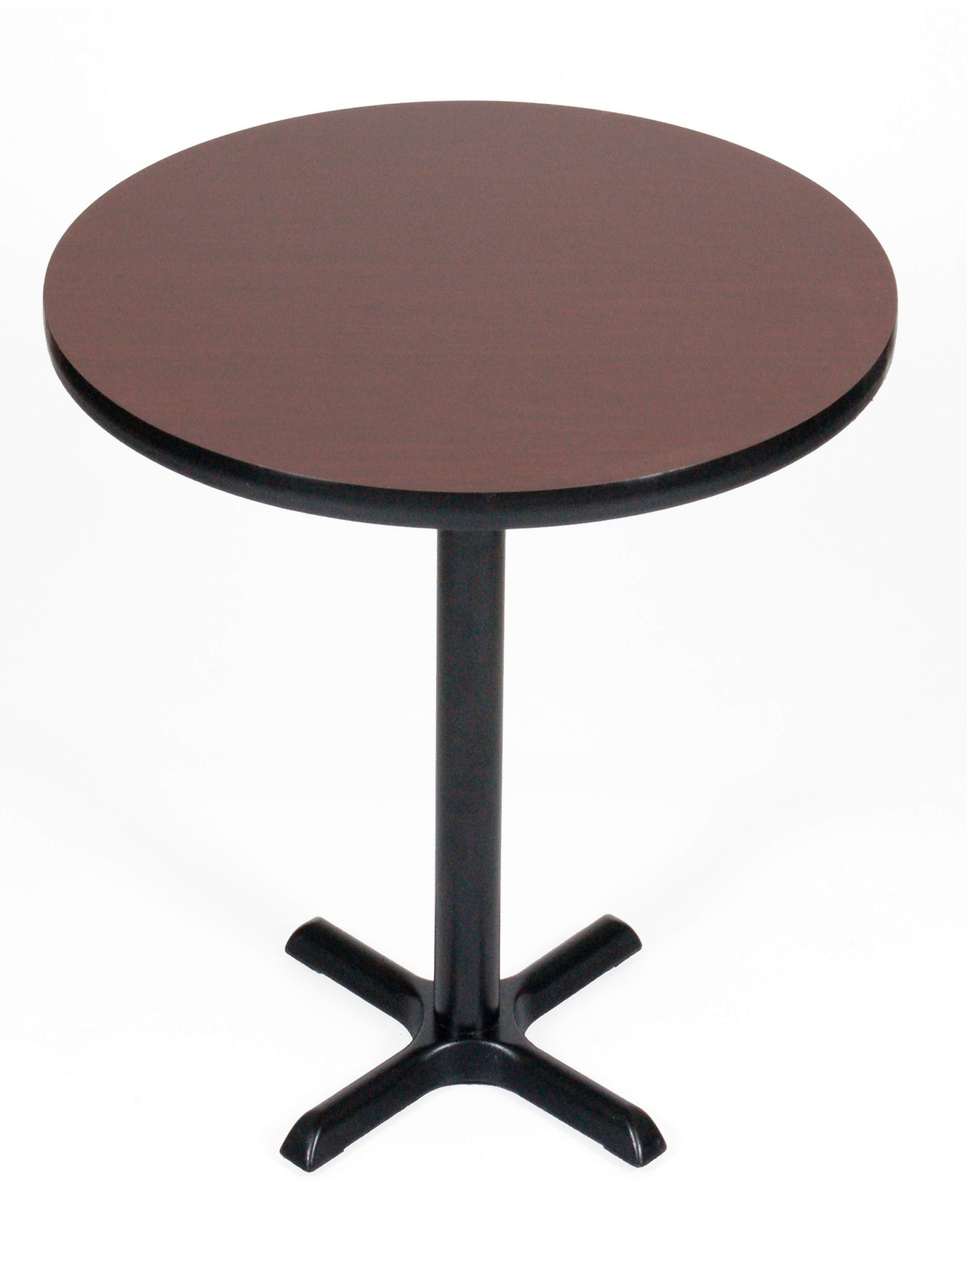 Correll bxb30r 21 high pressure round caf and breakroom for 12 x 30 table